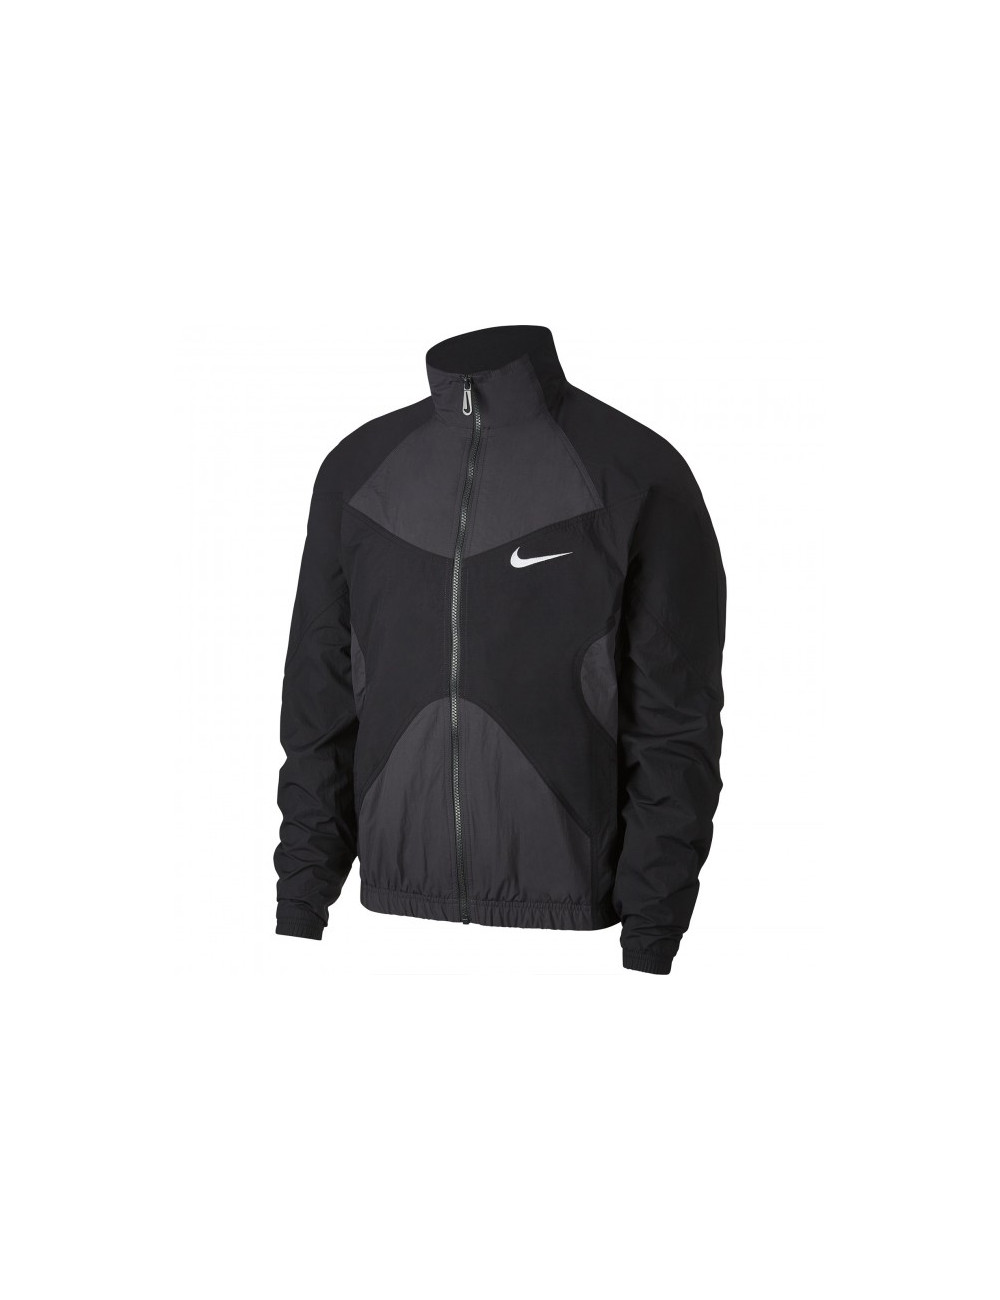 Nike sportswear Nsw tracksuit - BV5210-060 | Shapestore.it